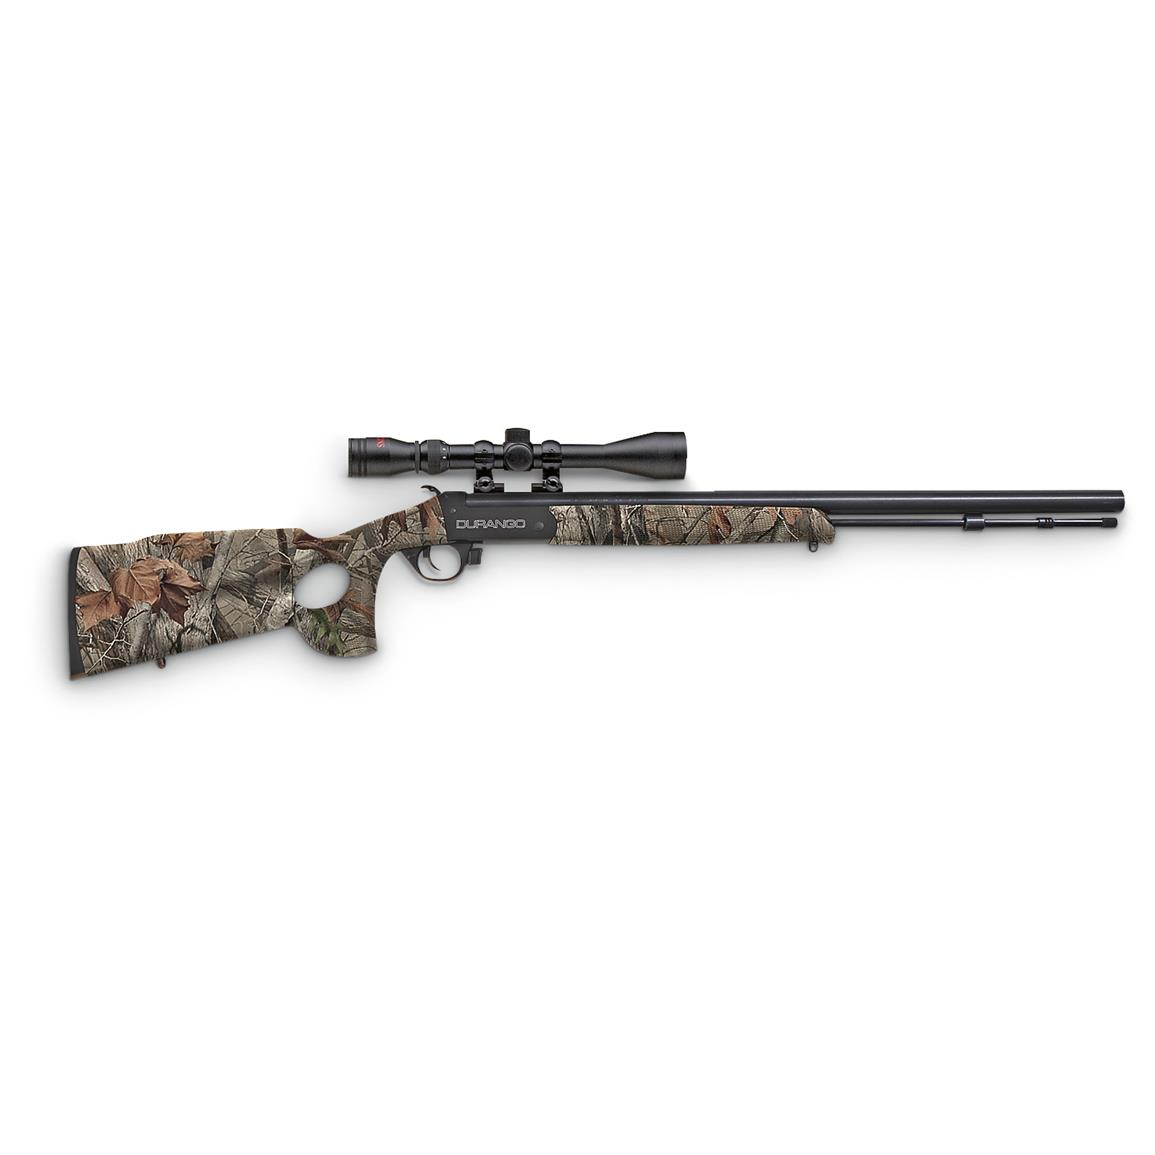 "Traditions Durango Black Powder Rifle, .50 Caliber, 24"" Blued Barrel, 4-12x40mm Scope"